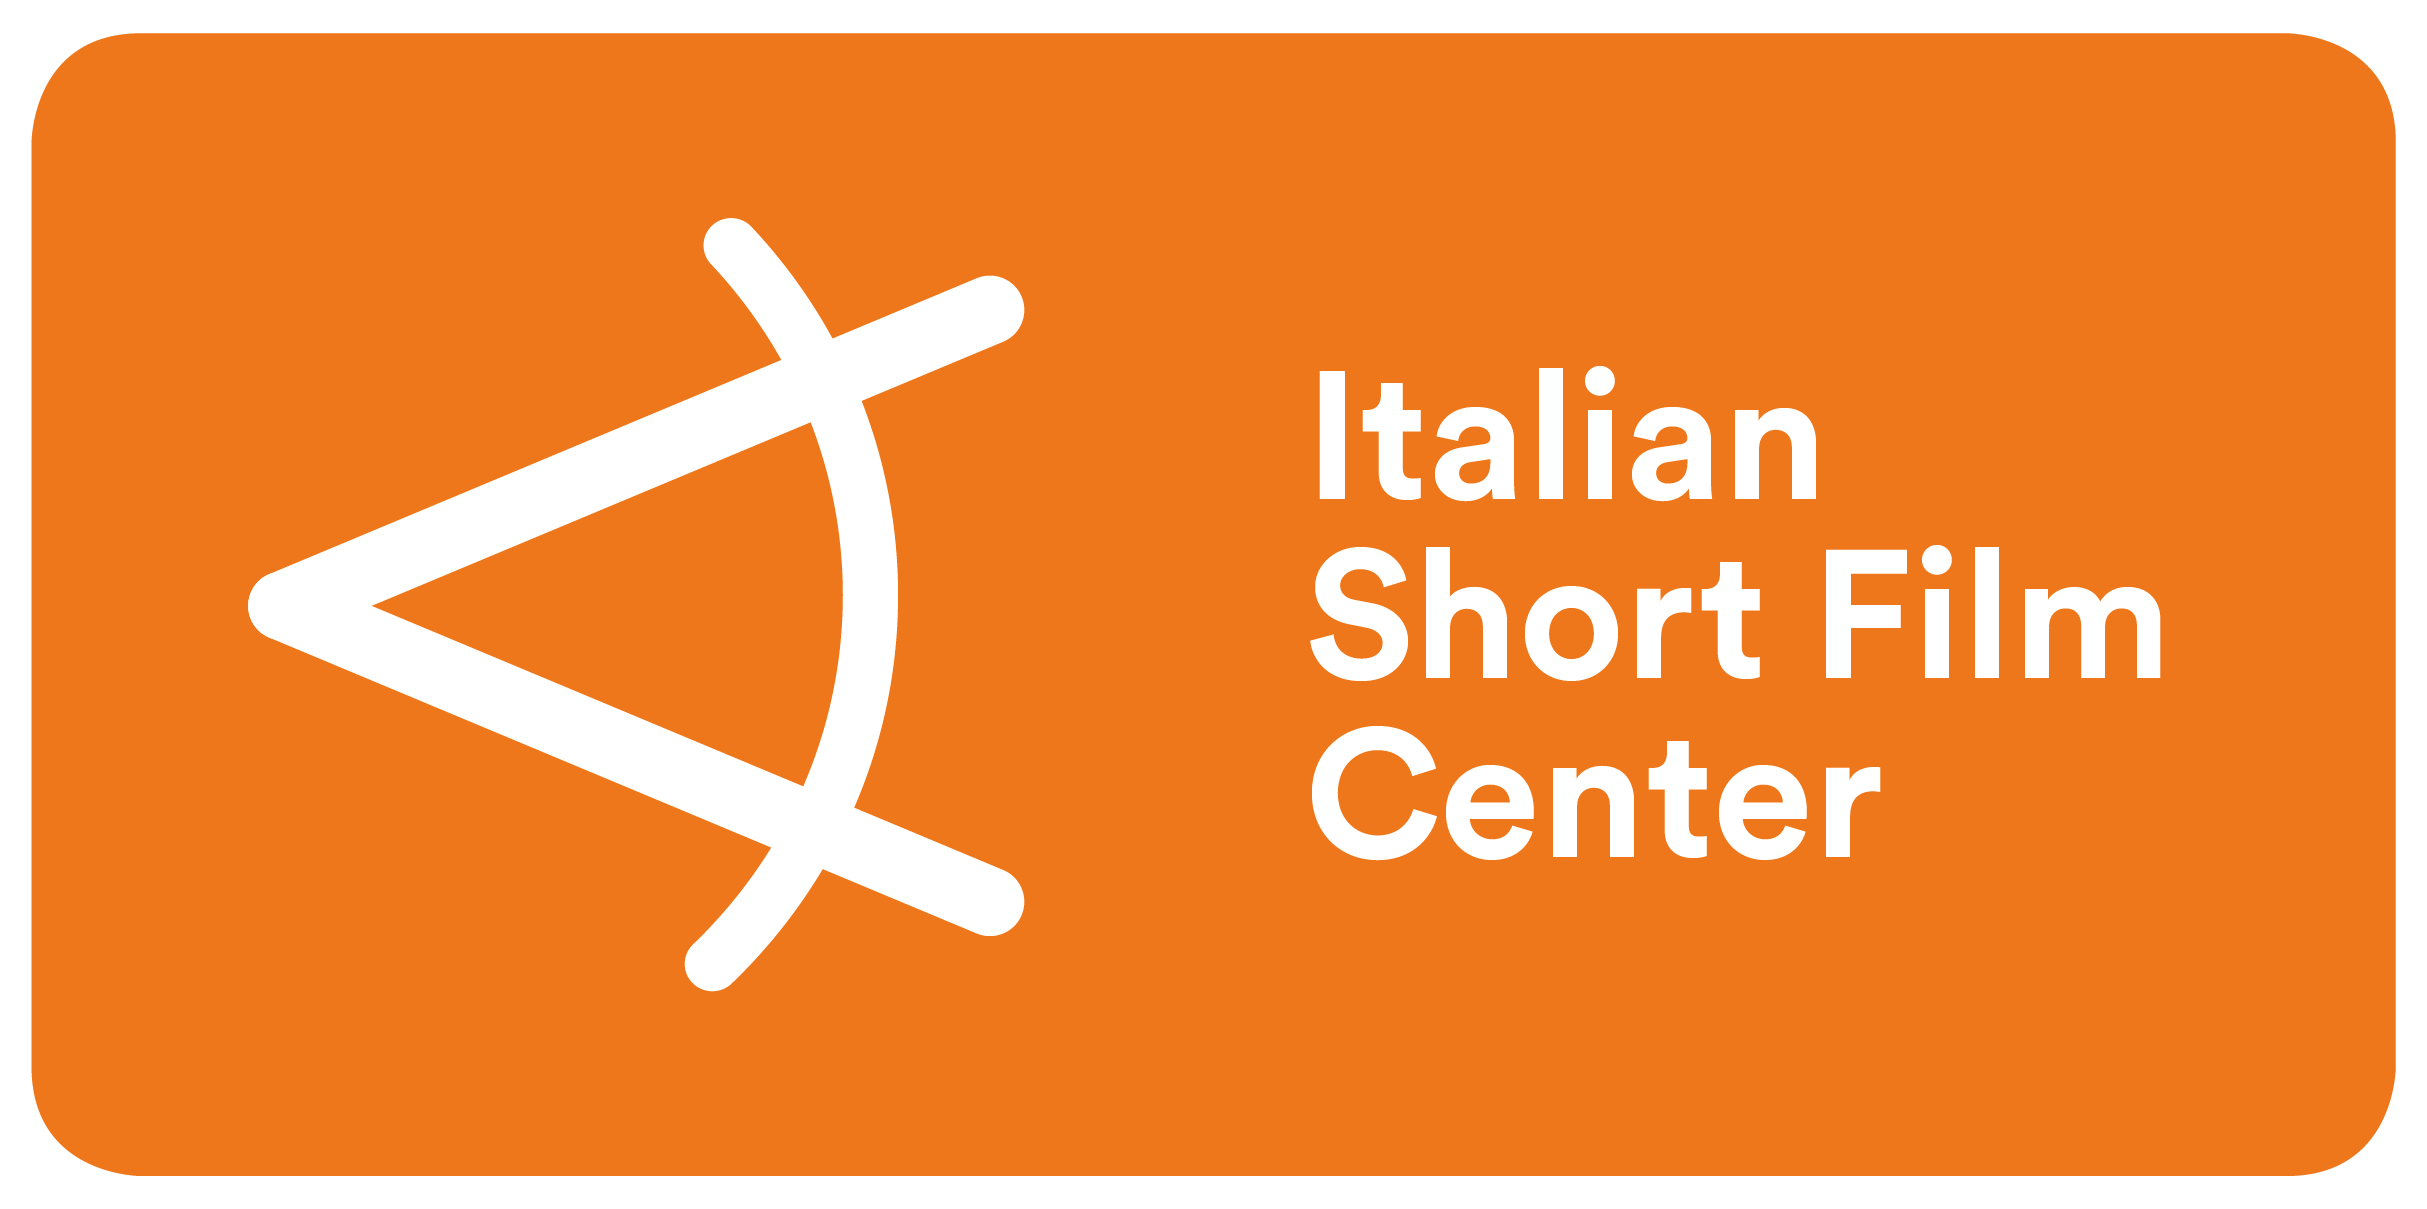 Italian Short Film Center / Centro del Cortometraggio